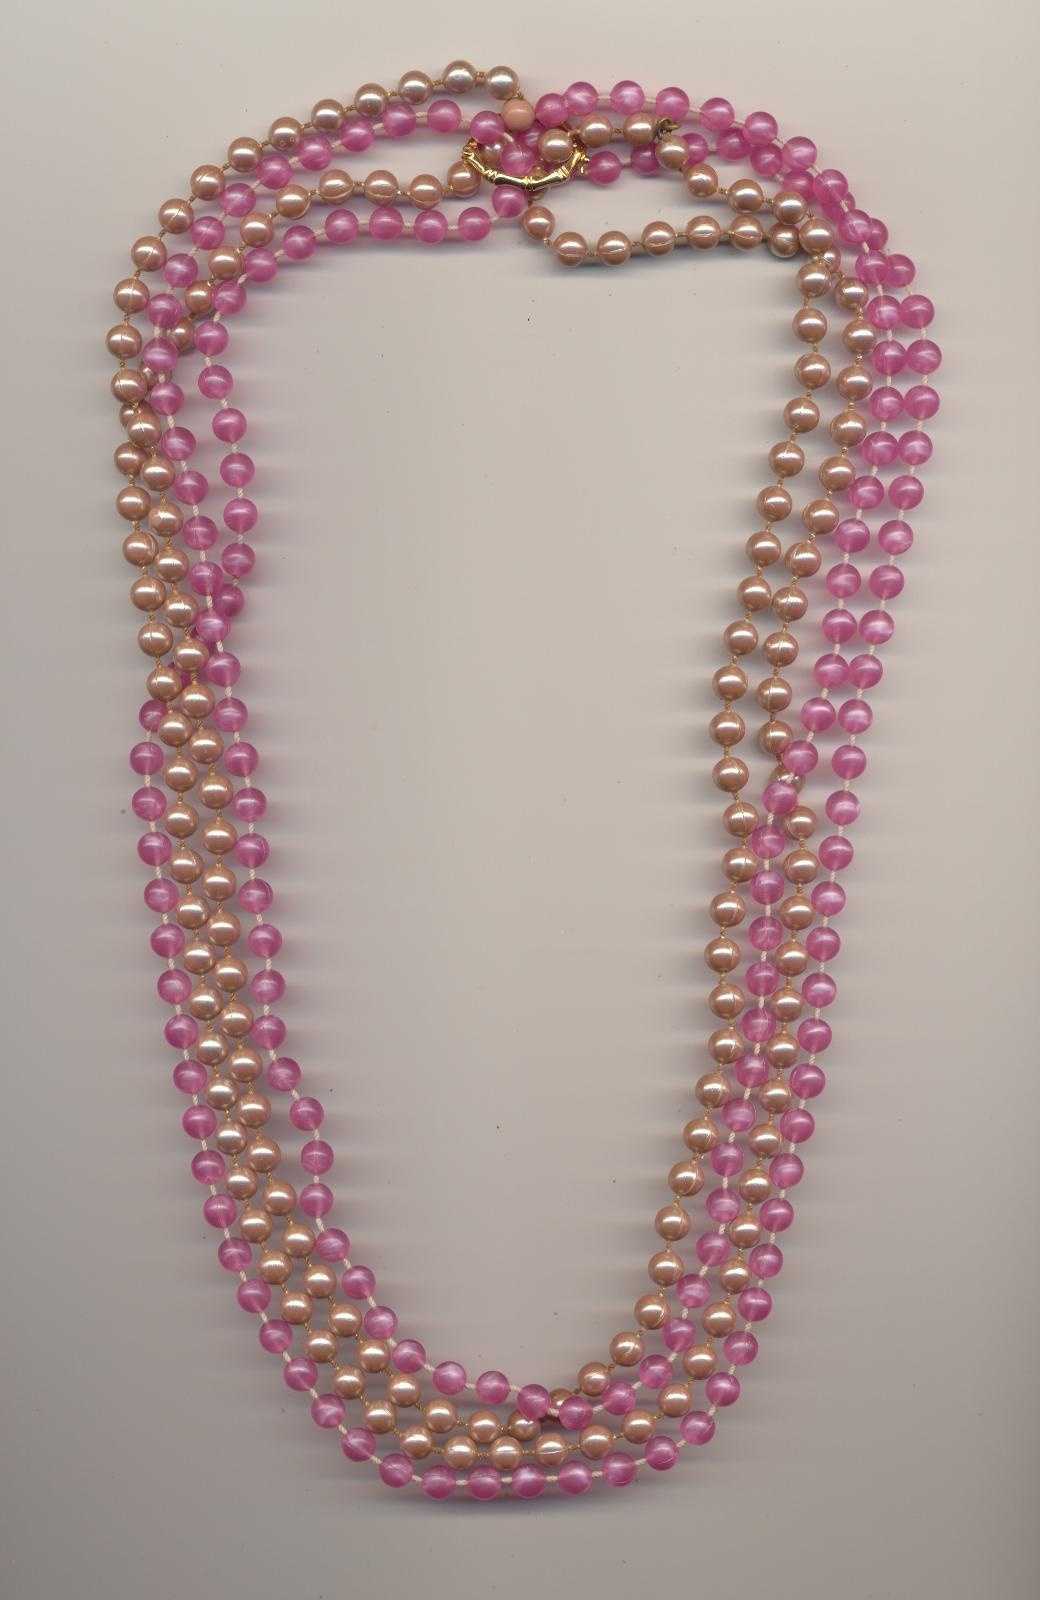 https://www.choosing-bead-necklaces.com/images/making/12_necklace_your_own_creations_four_strands,_pearl_shortener,_two_necklaces.jpg